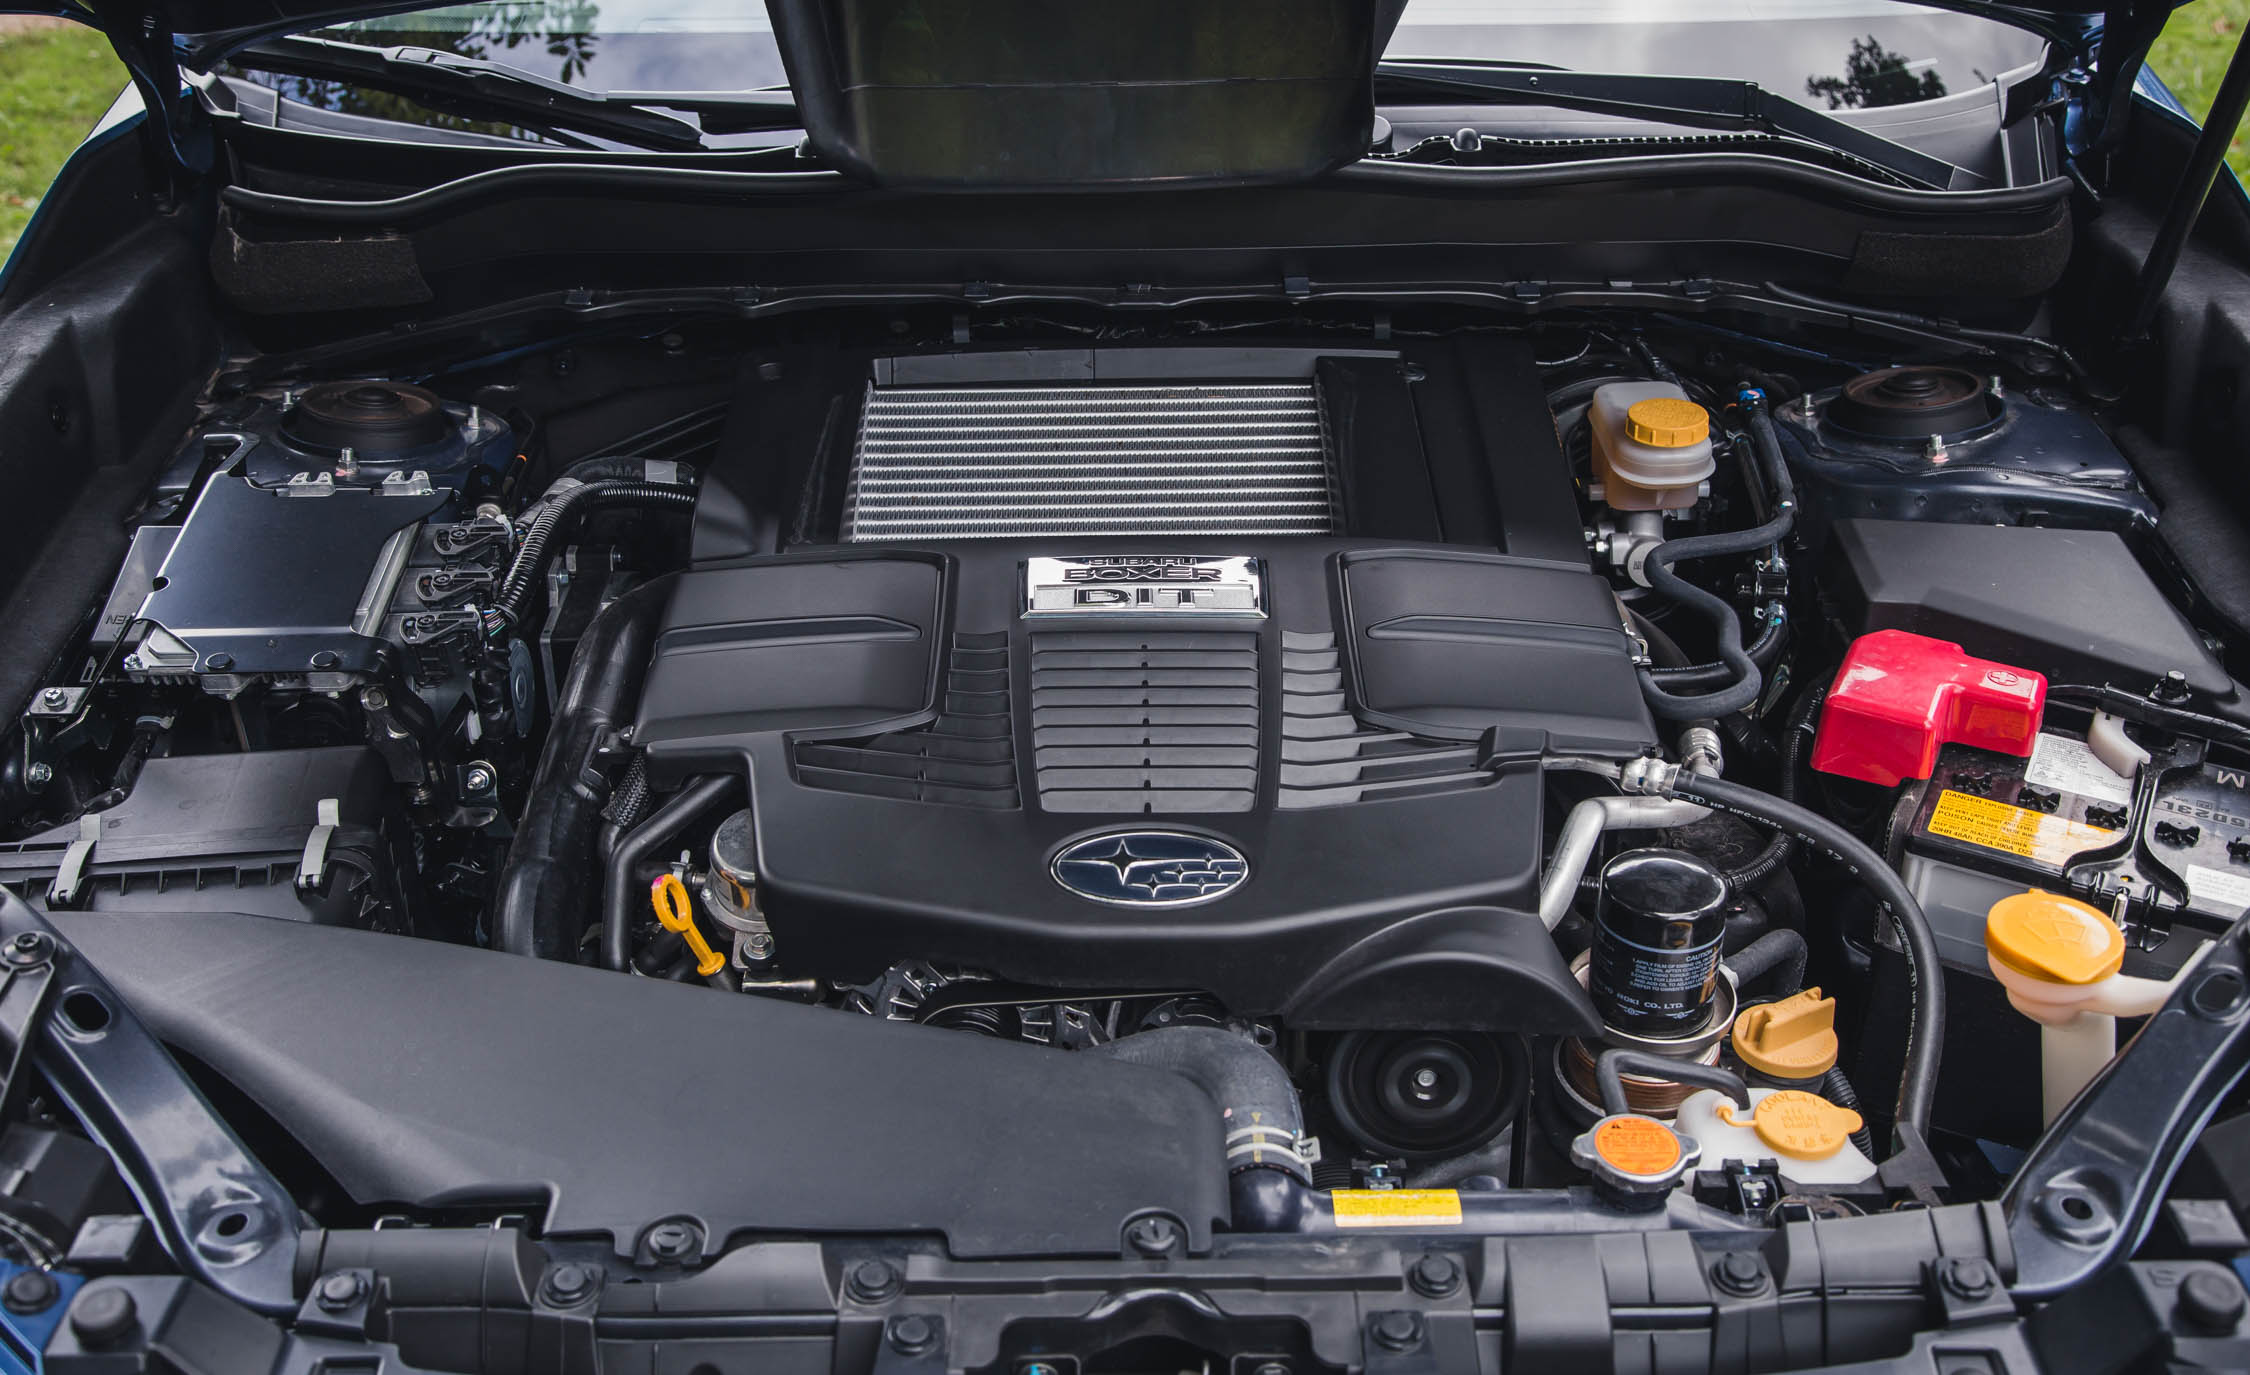 2016 Subaru Forester 2 0xt Touring Engine (Photo 3 of 29)